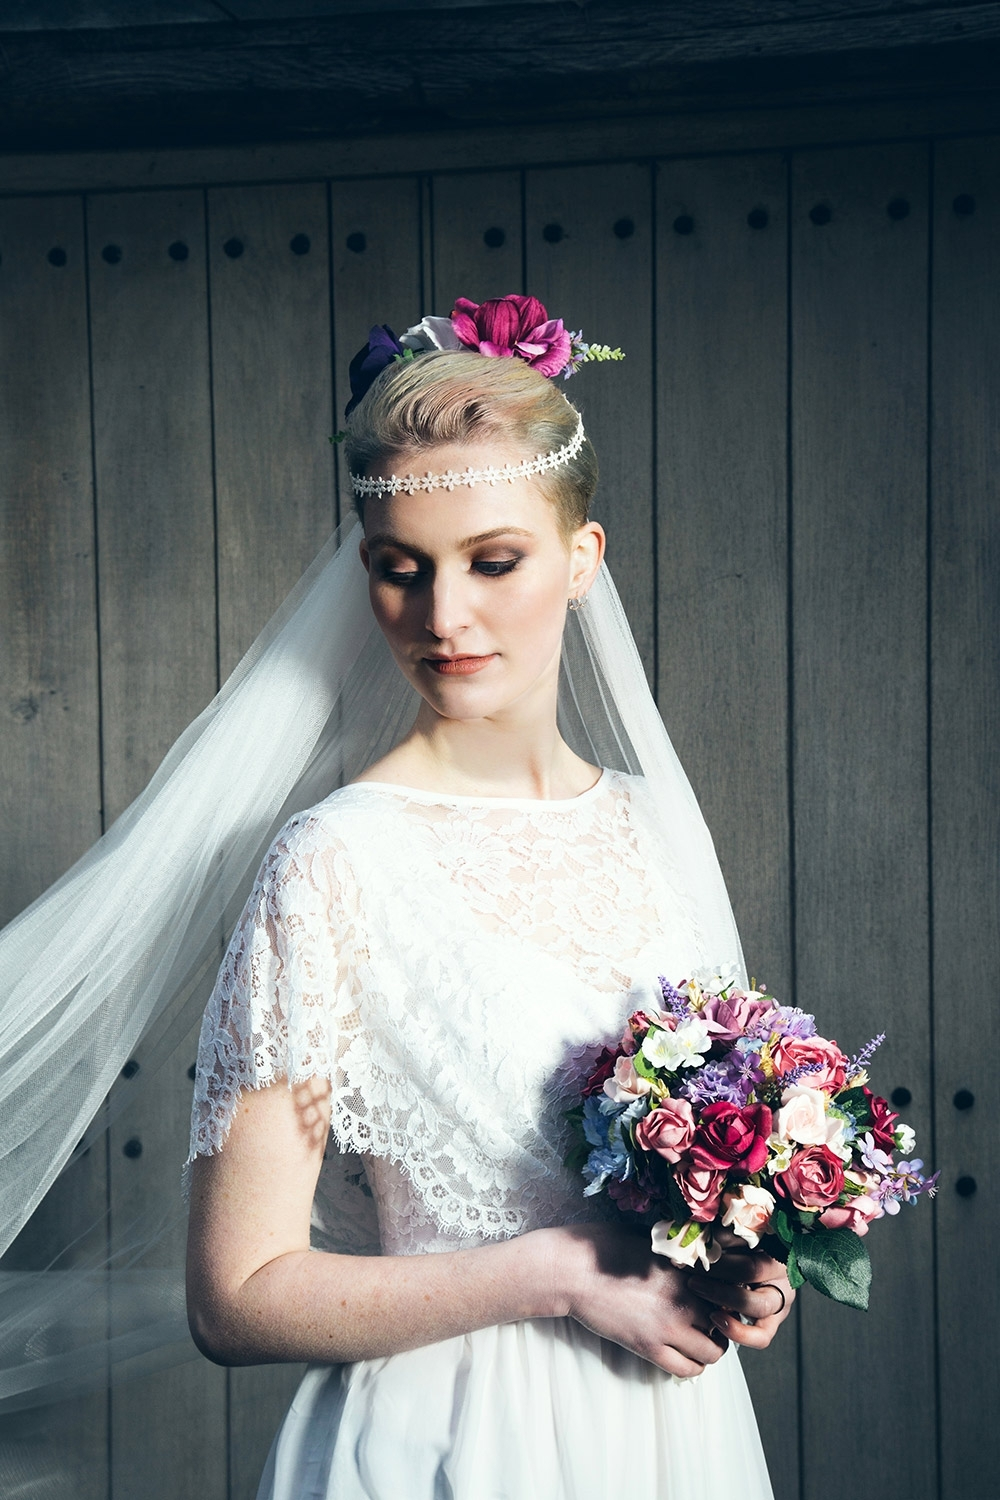 Retro Wedding Hairstyles (View 13 of 15)